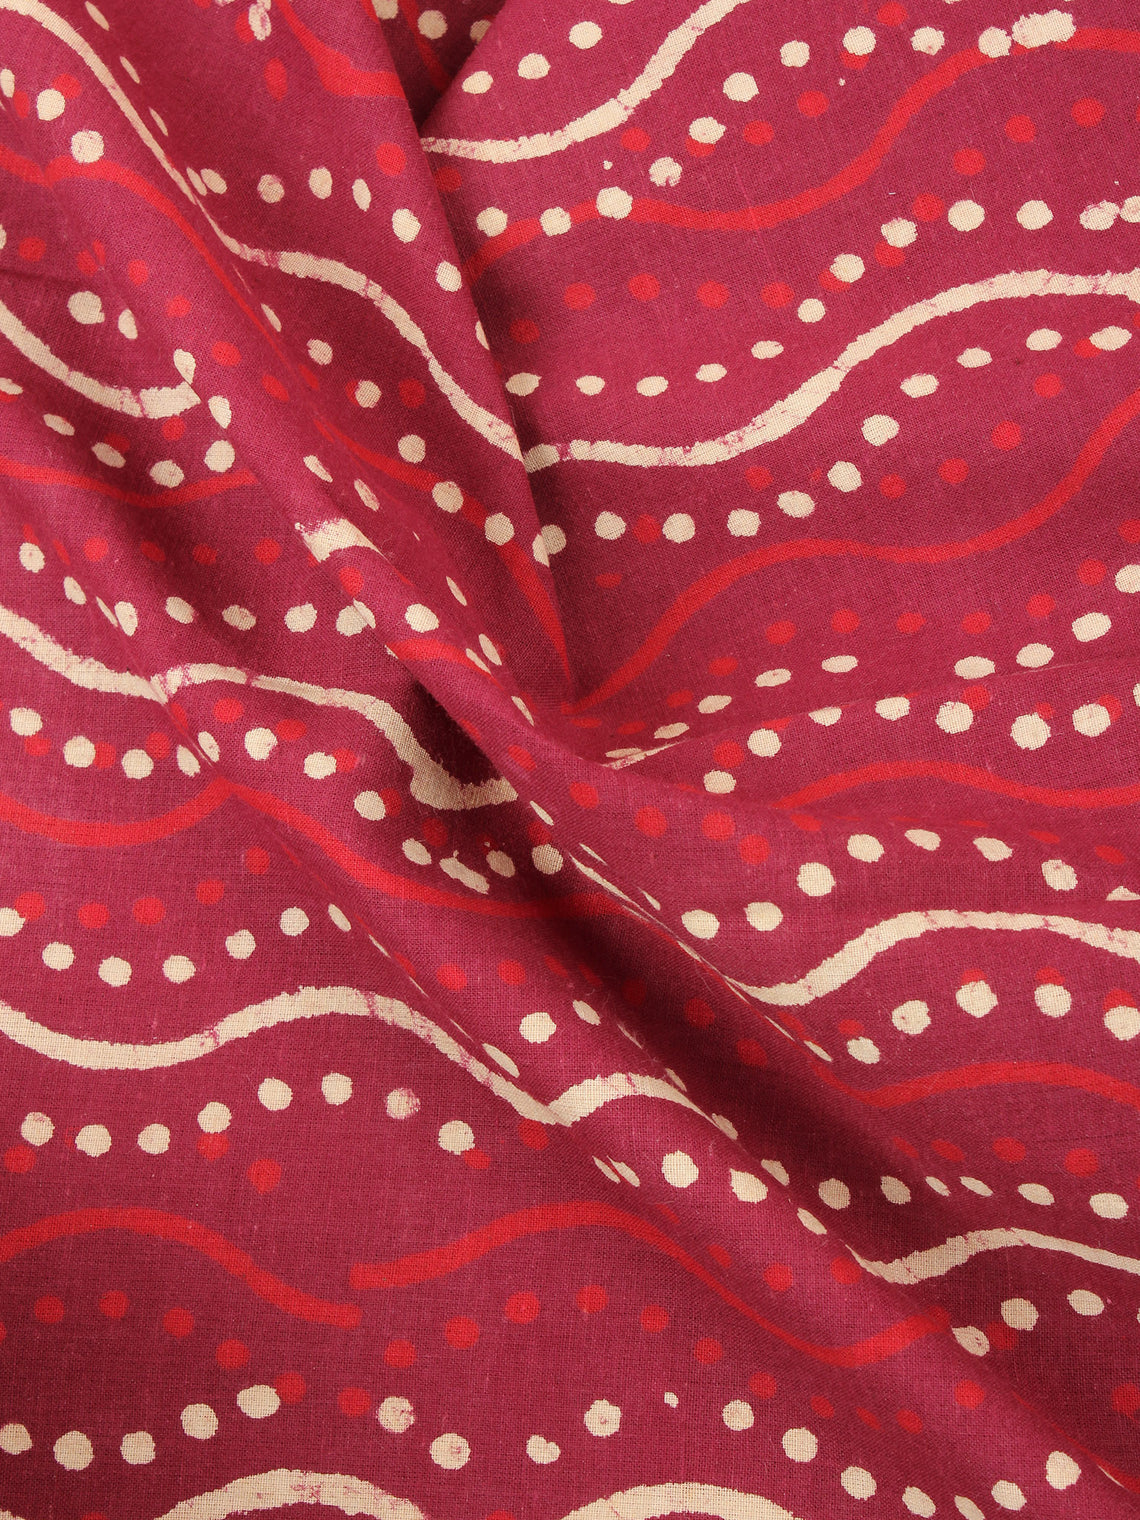 Red with Beige Color Natural Dyed Hand Block Printed Cotton Fabric Per Meter - F0916217